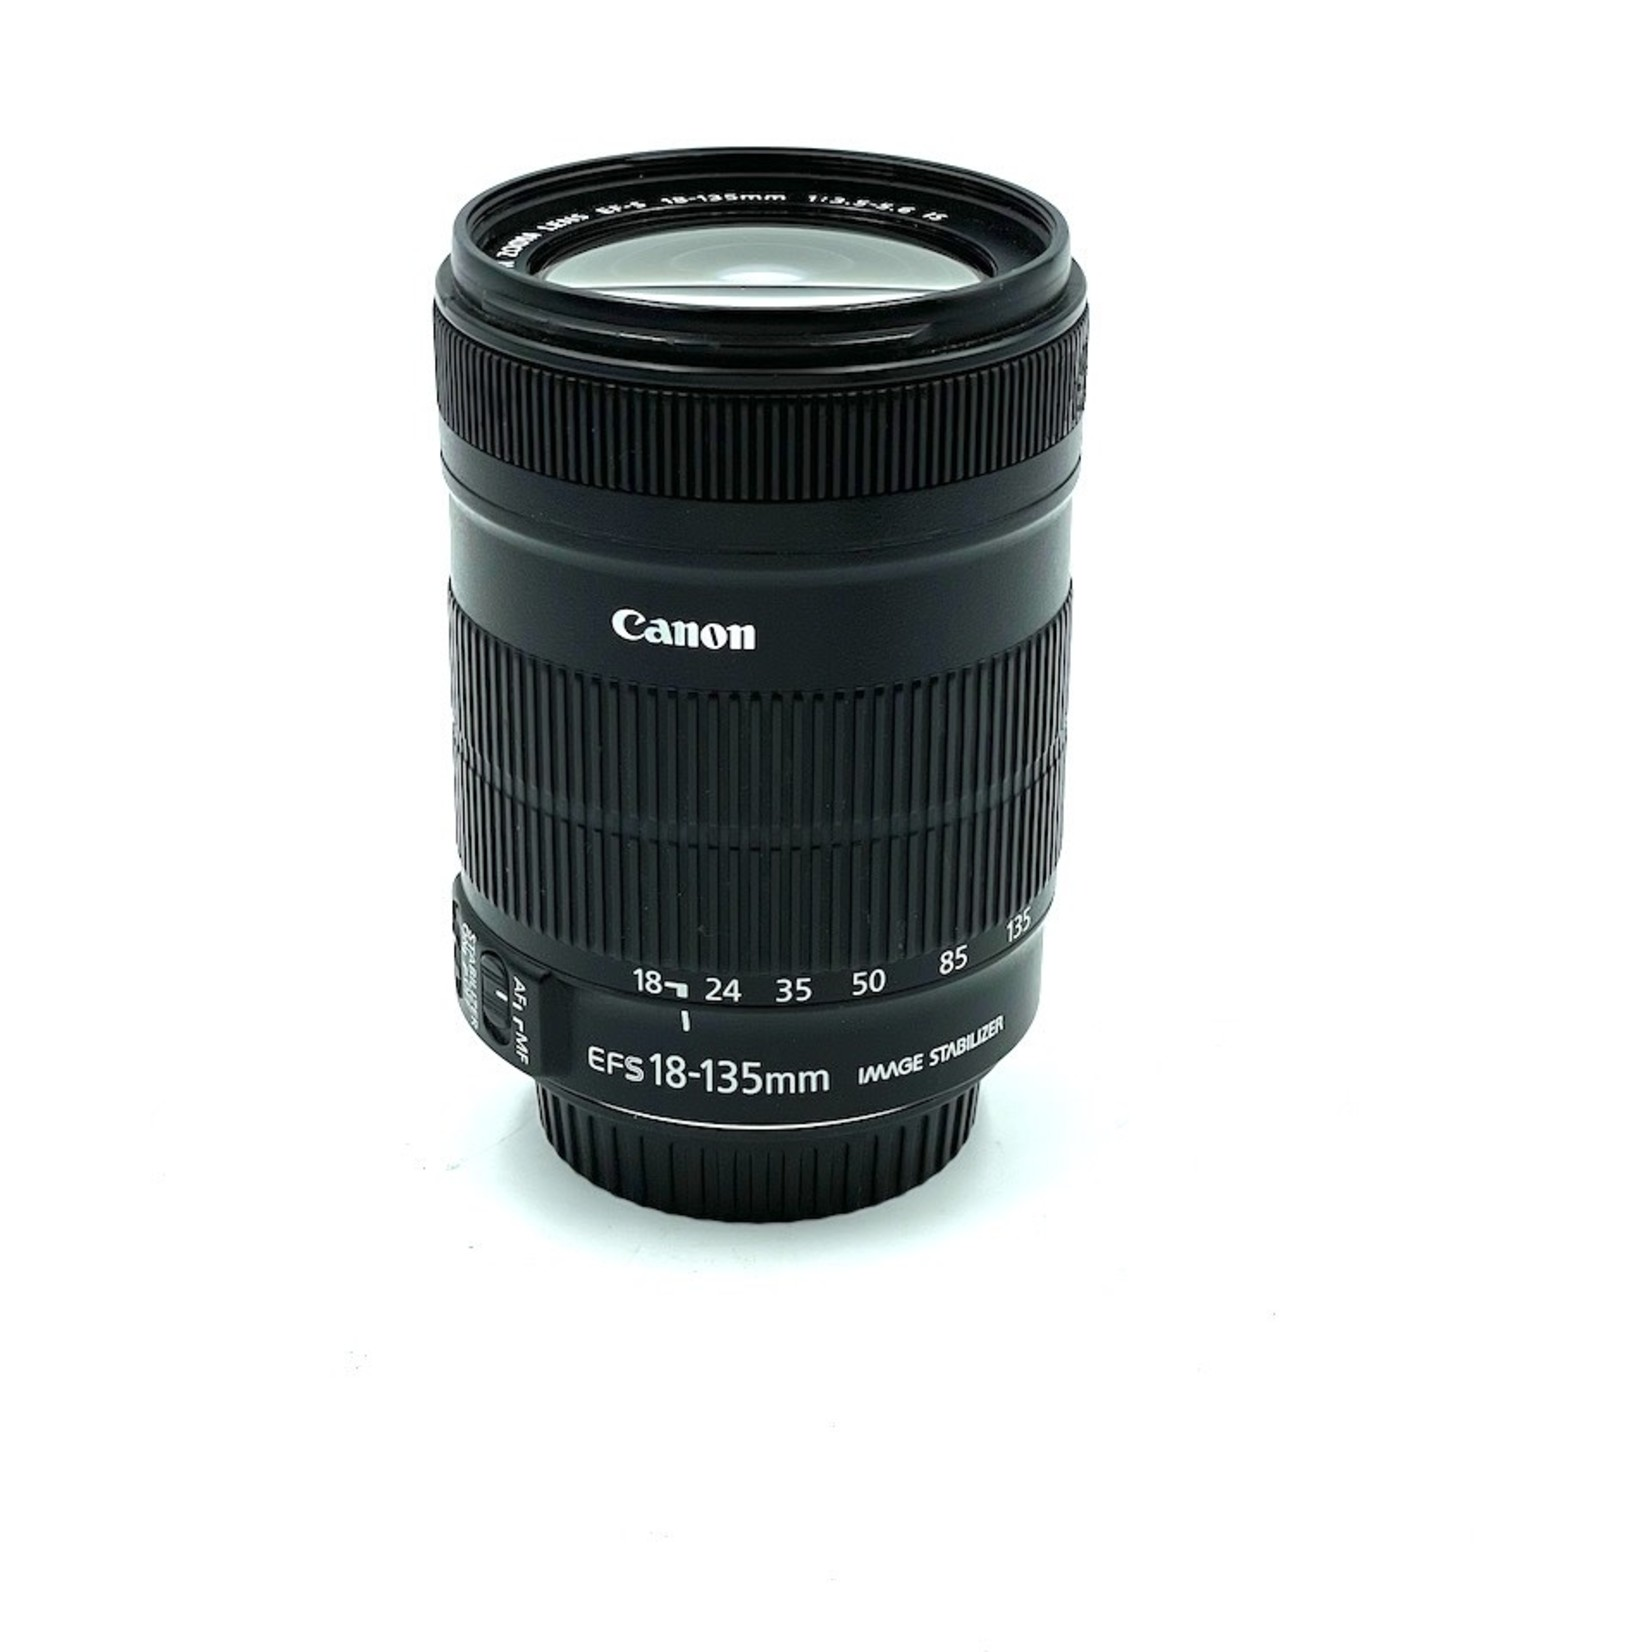 Canon Used Canon 18-135mm EFS